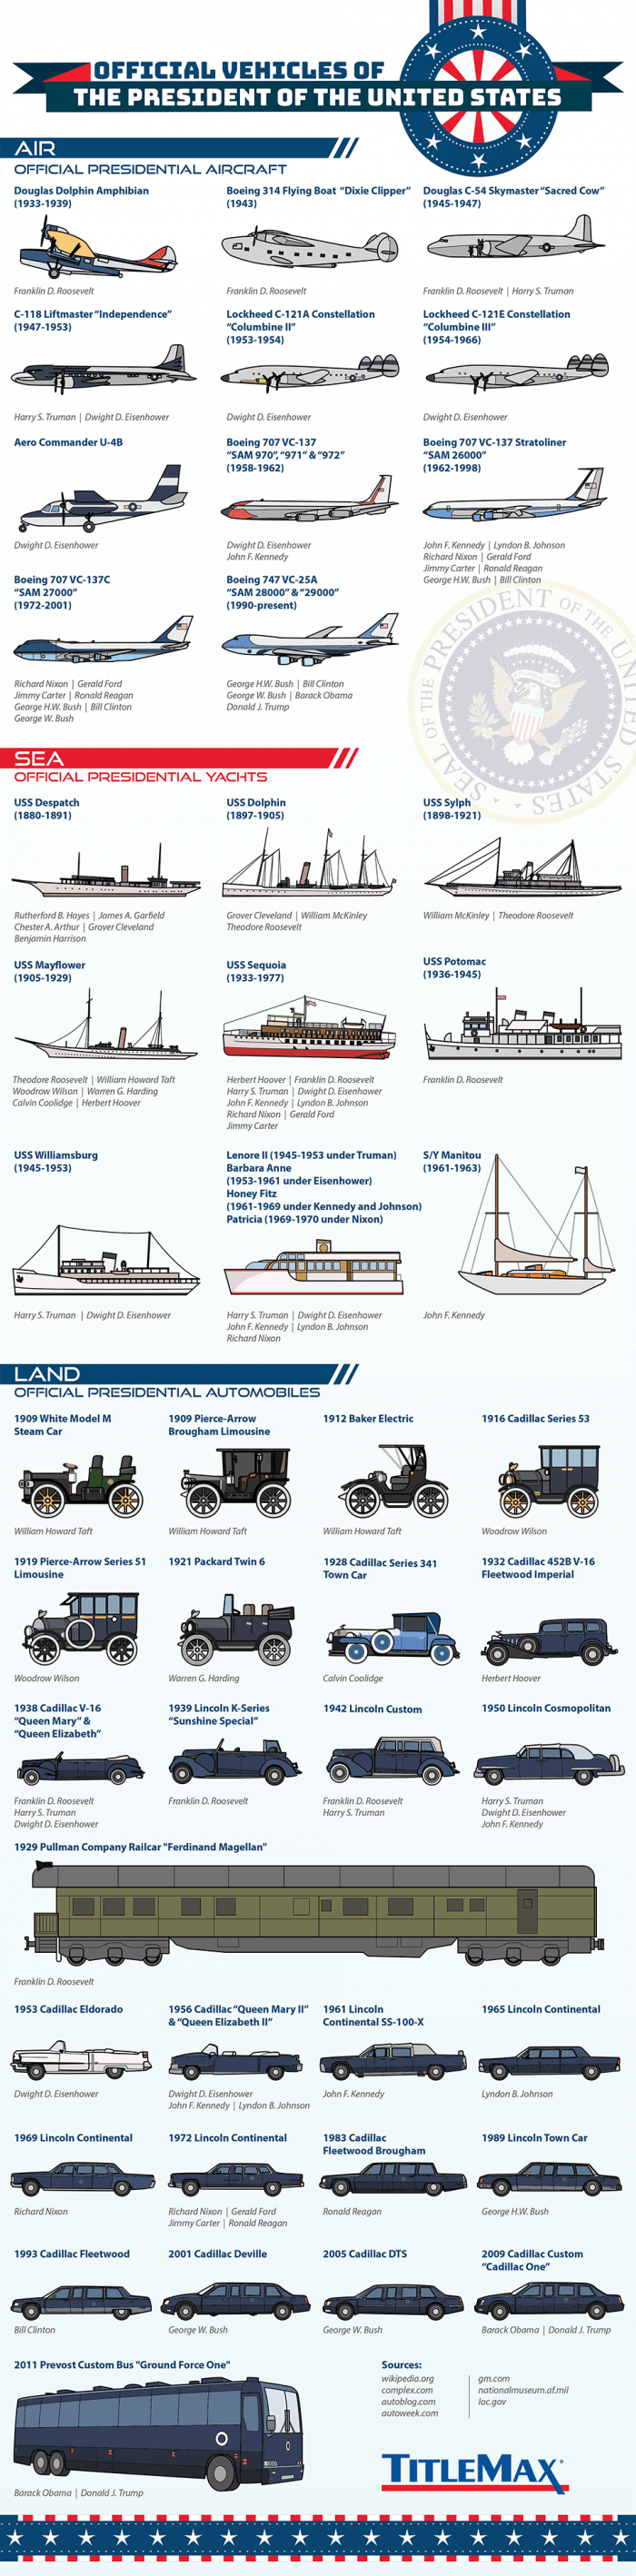 The US President's Official Vehicles